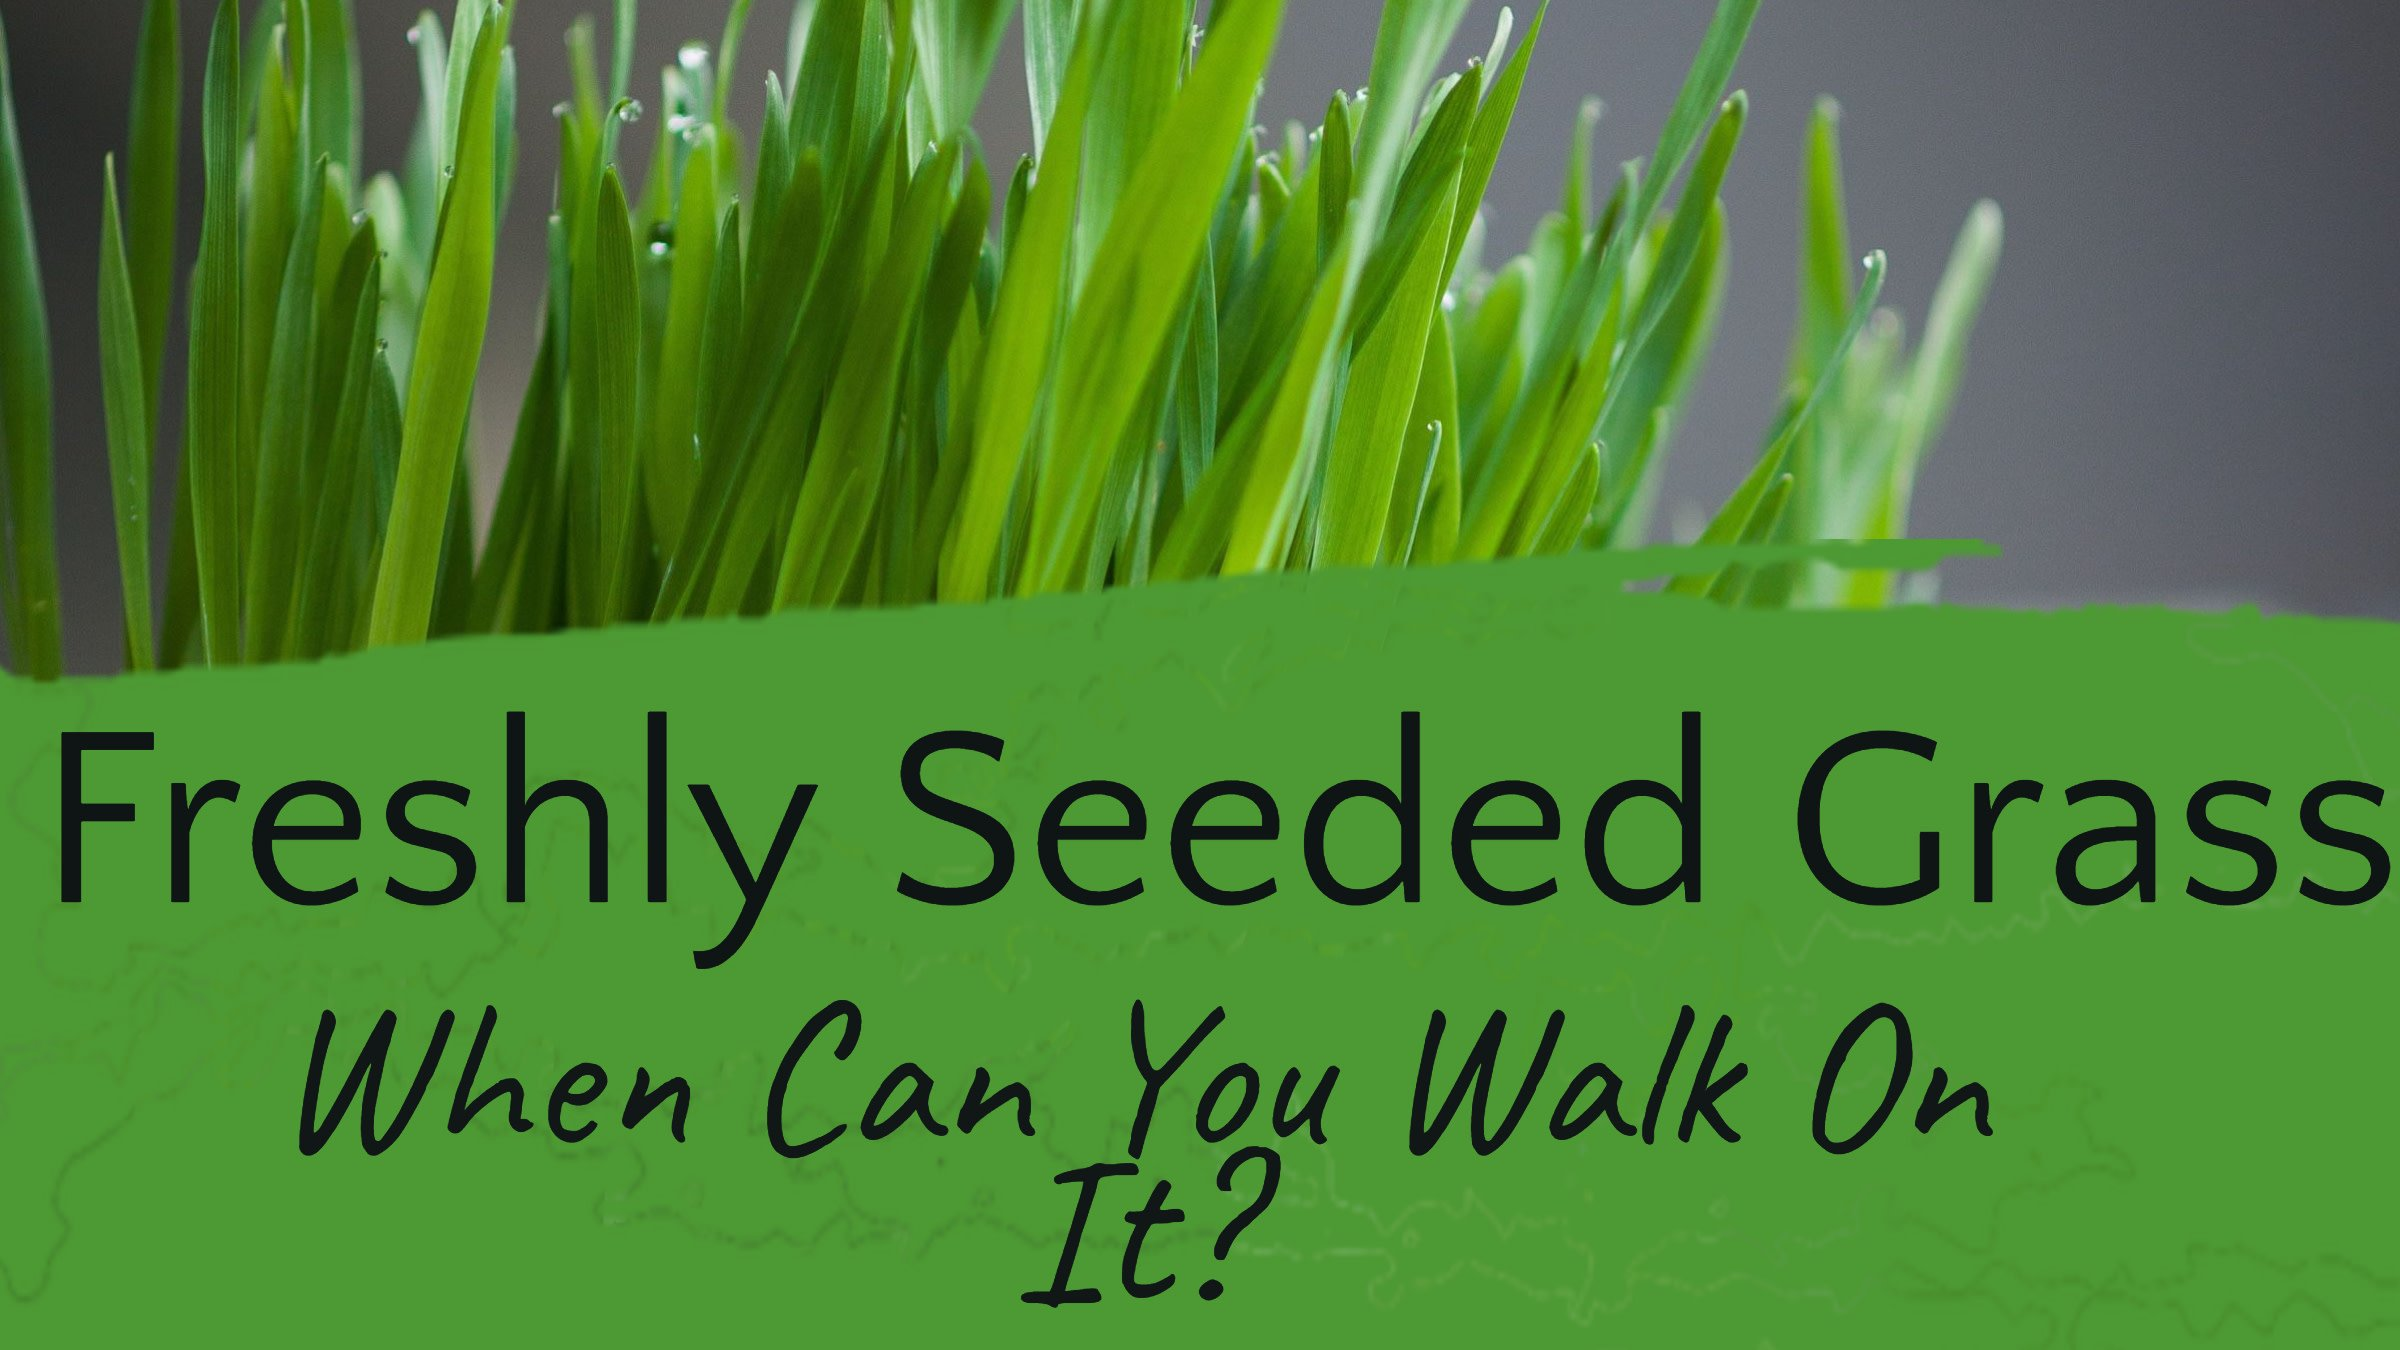 when can you walk on seeded grass